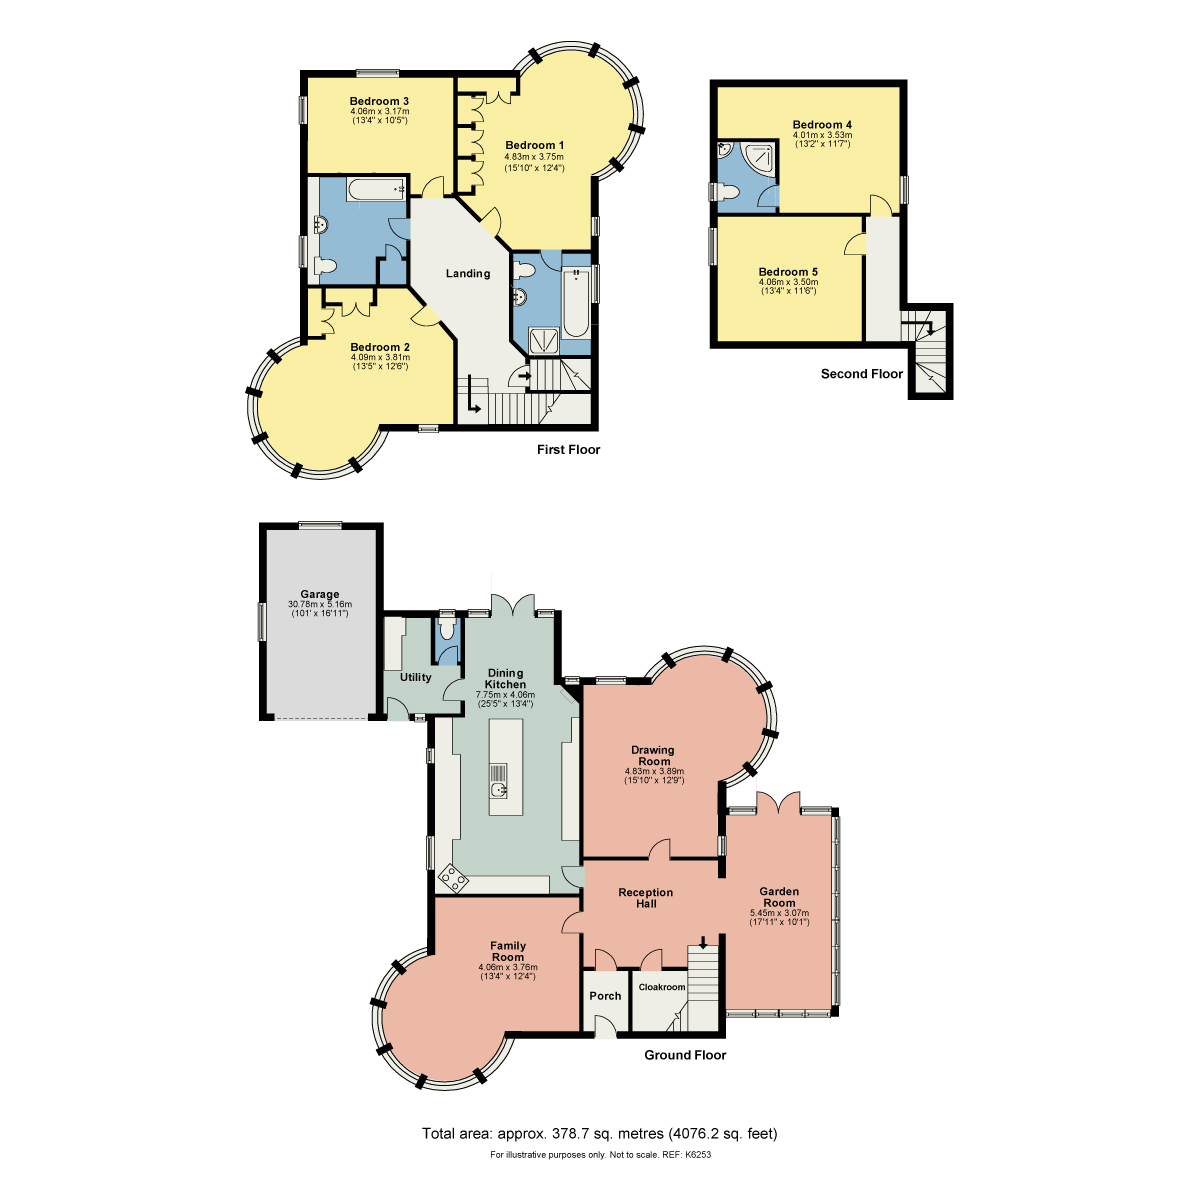 Floorplan Kentrigg House, 131 Burneside Road, Kendal, Cumbria, LA9 6EB